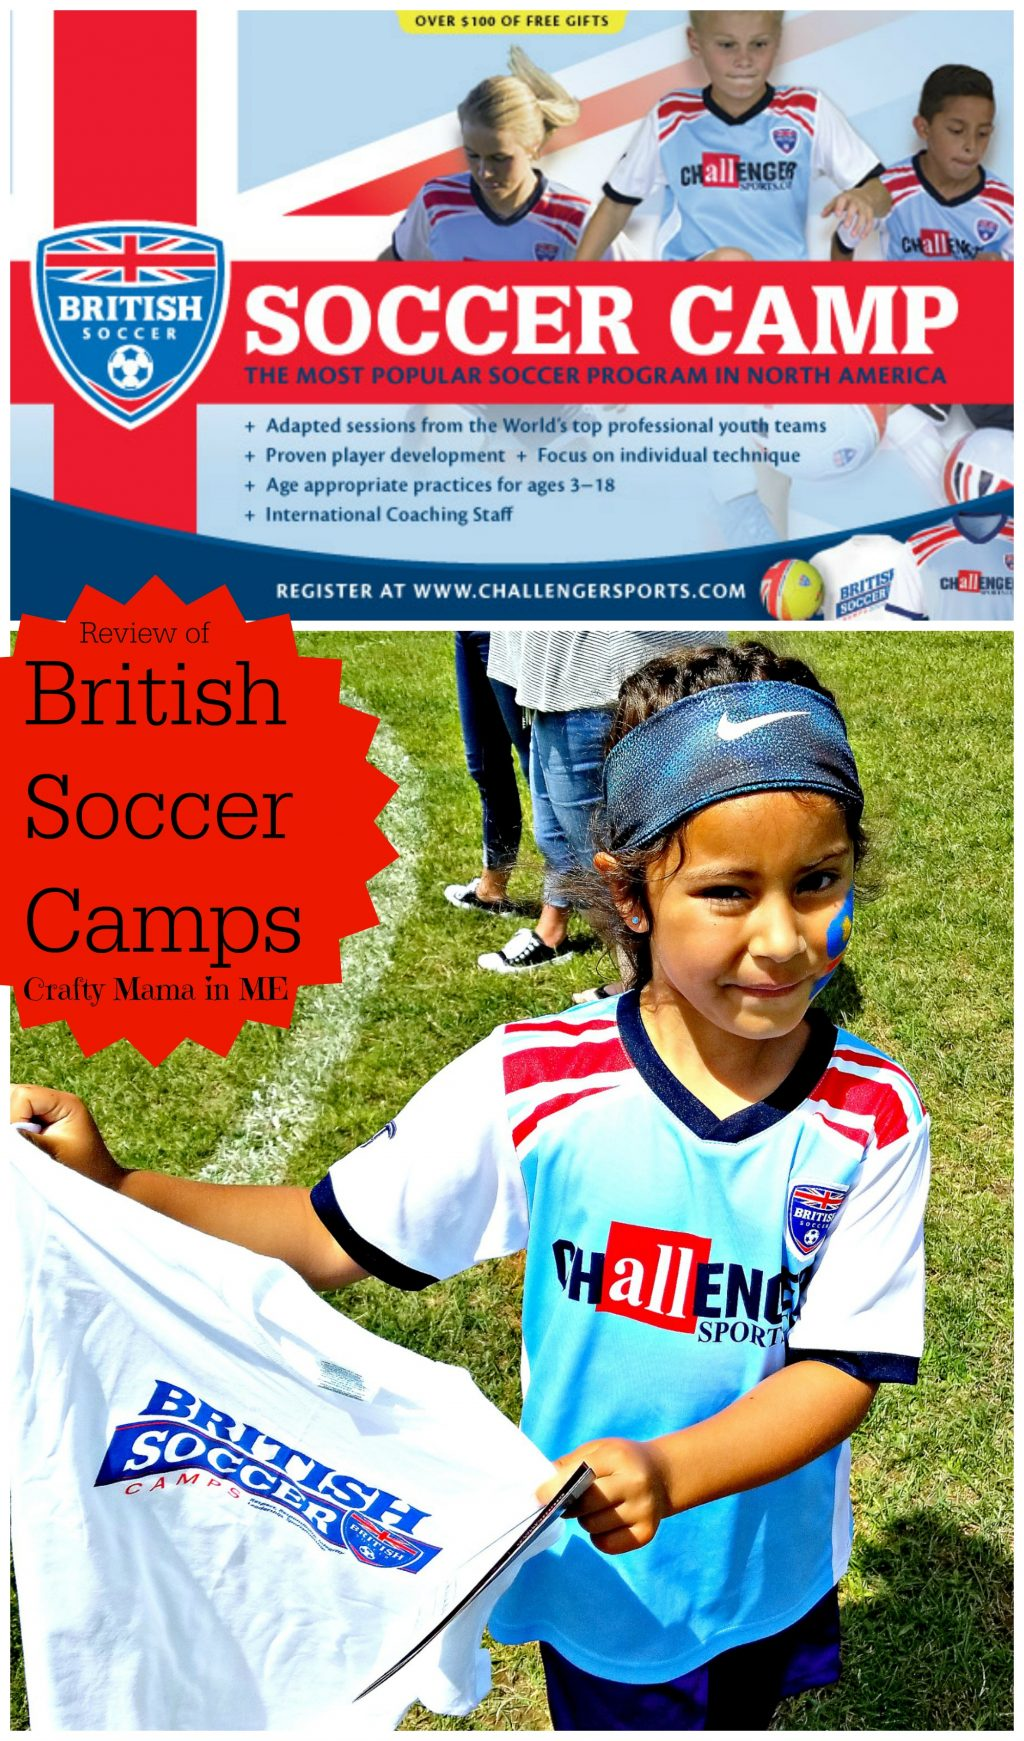 Review of British Soccer Camps